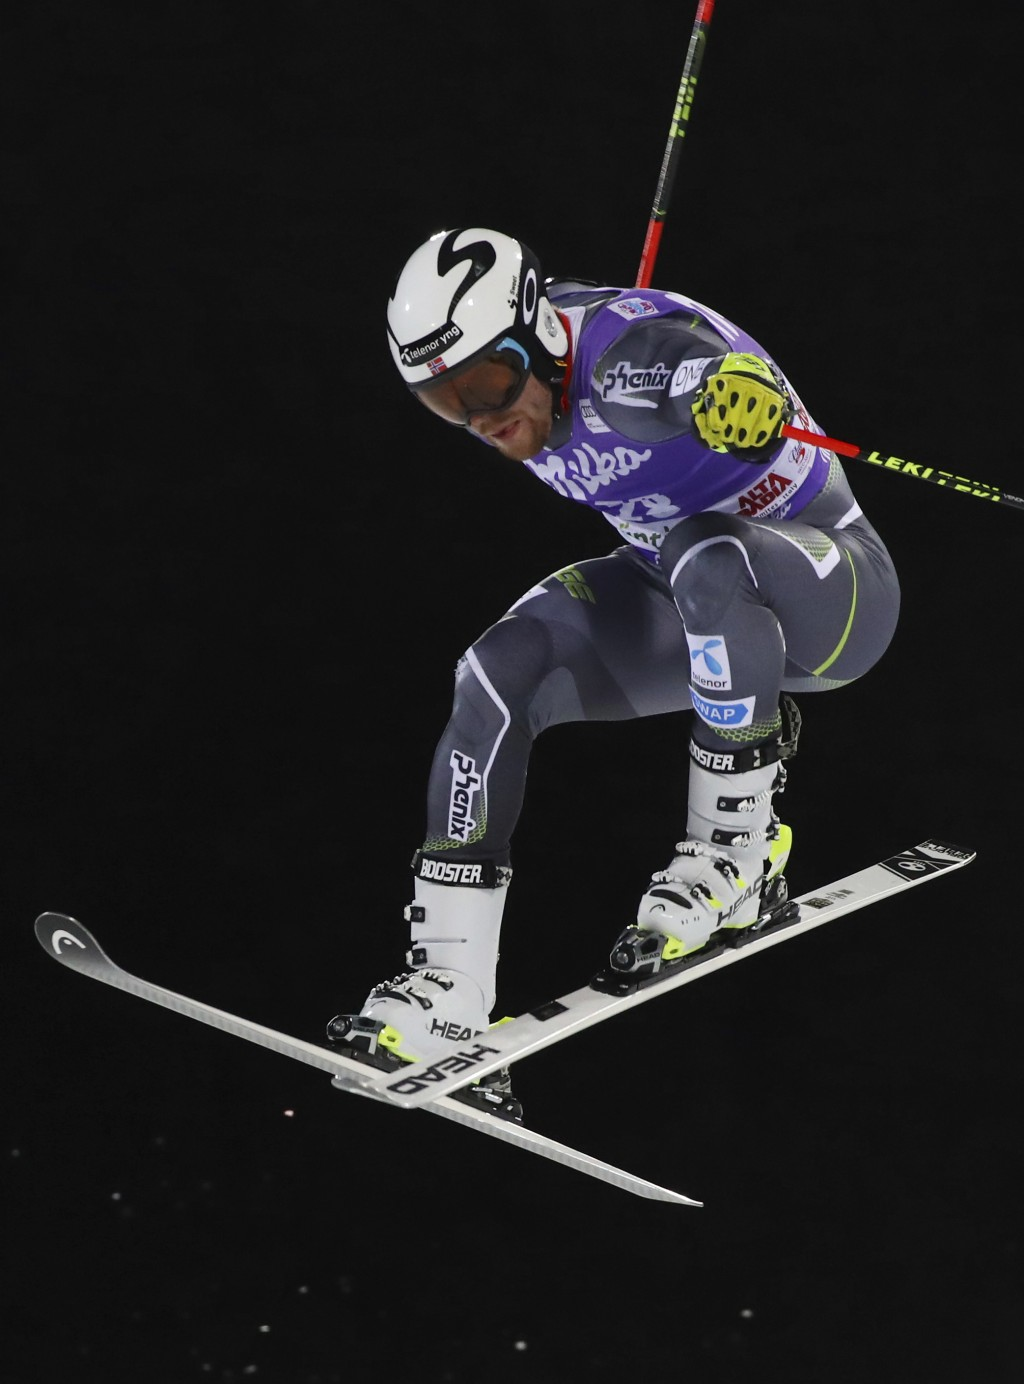 Norway's Aleksander Aamodt Kilde speeds down the course during a ski World Cup men's Parallel Giant Slalom, in Alta Badia, Italy, Monday, Dec. 17, 201...